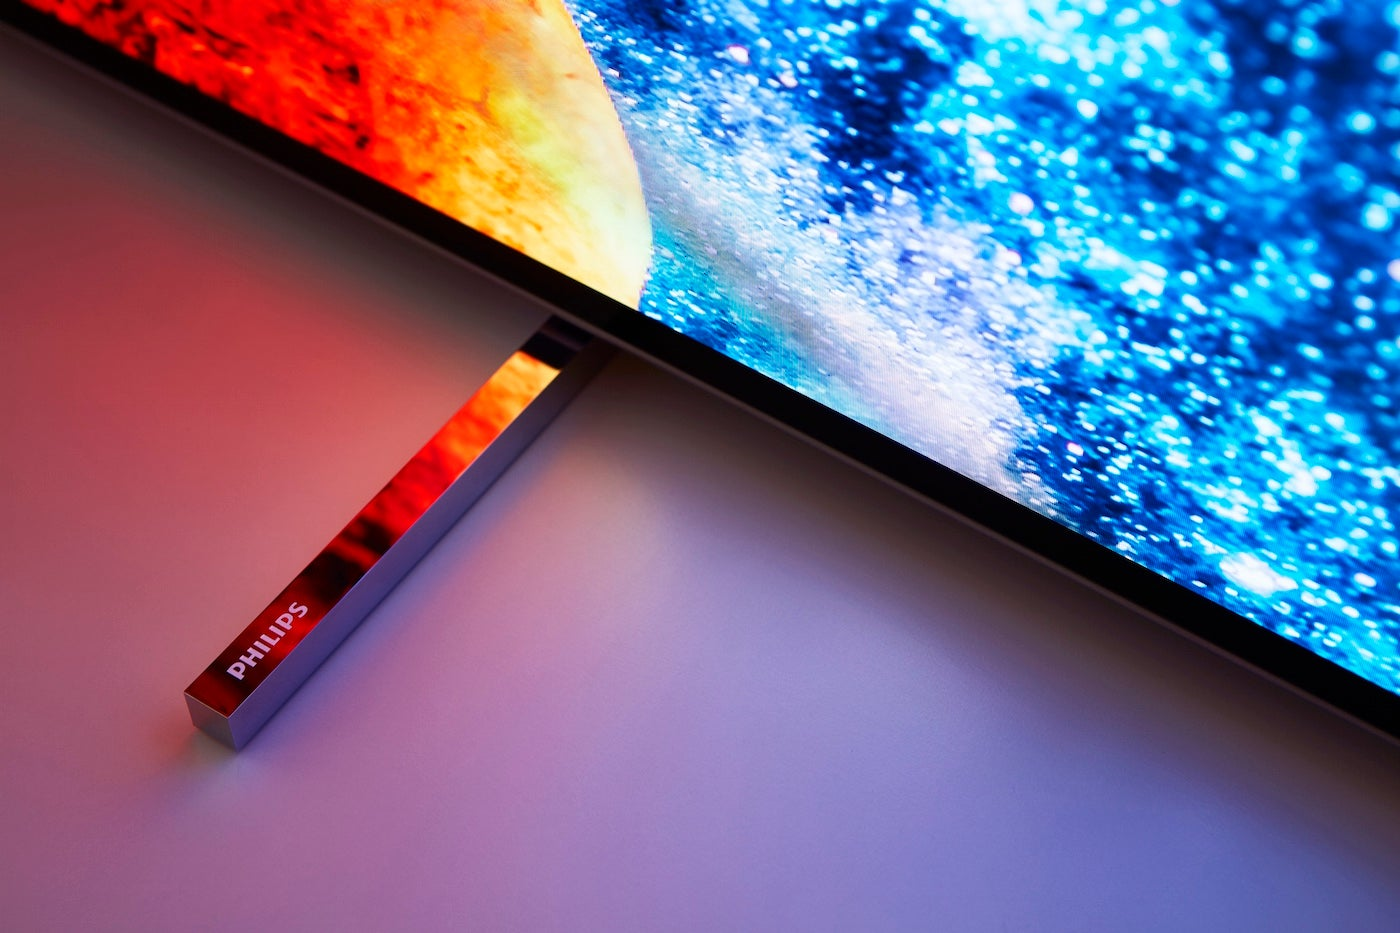 Philips 65OLED803 may well be the most exciting OLED TV yet